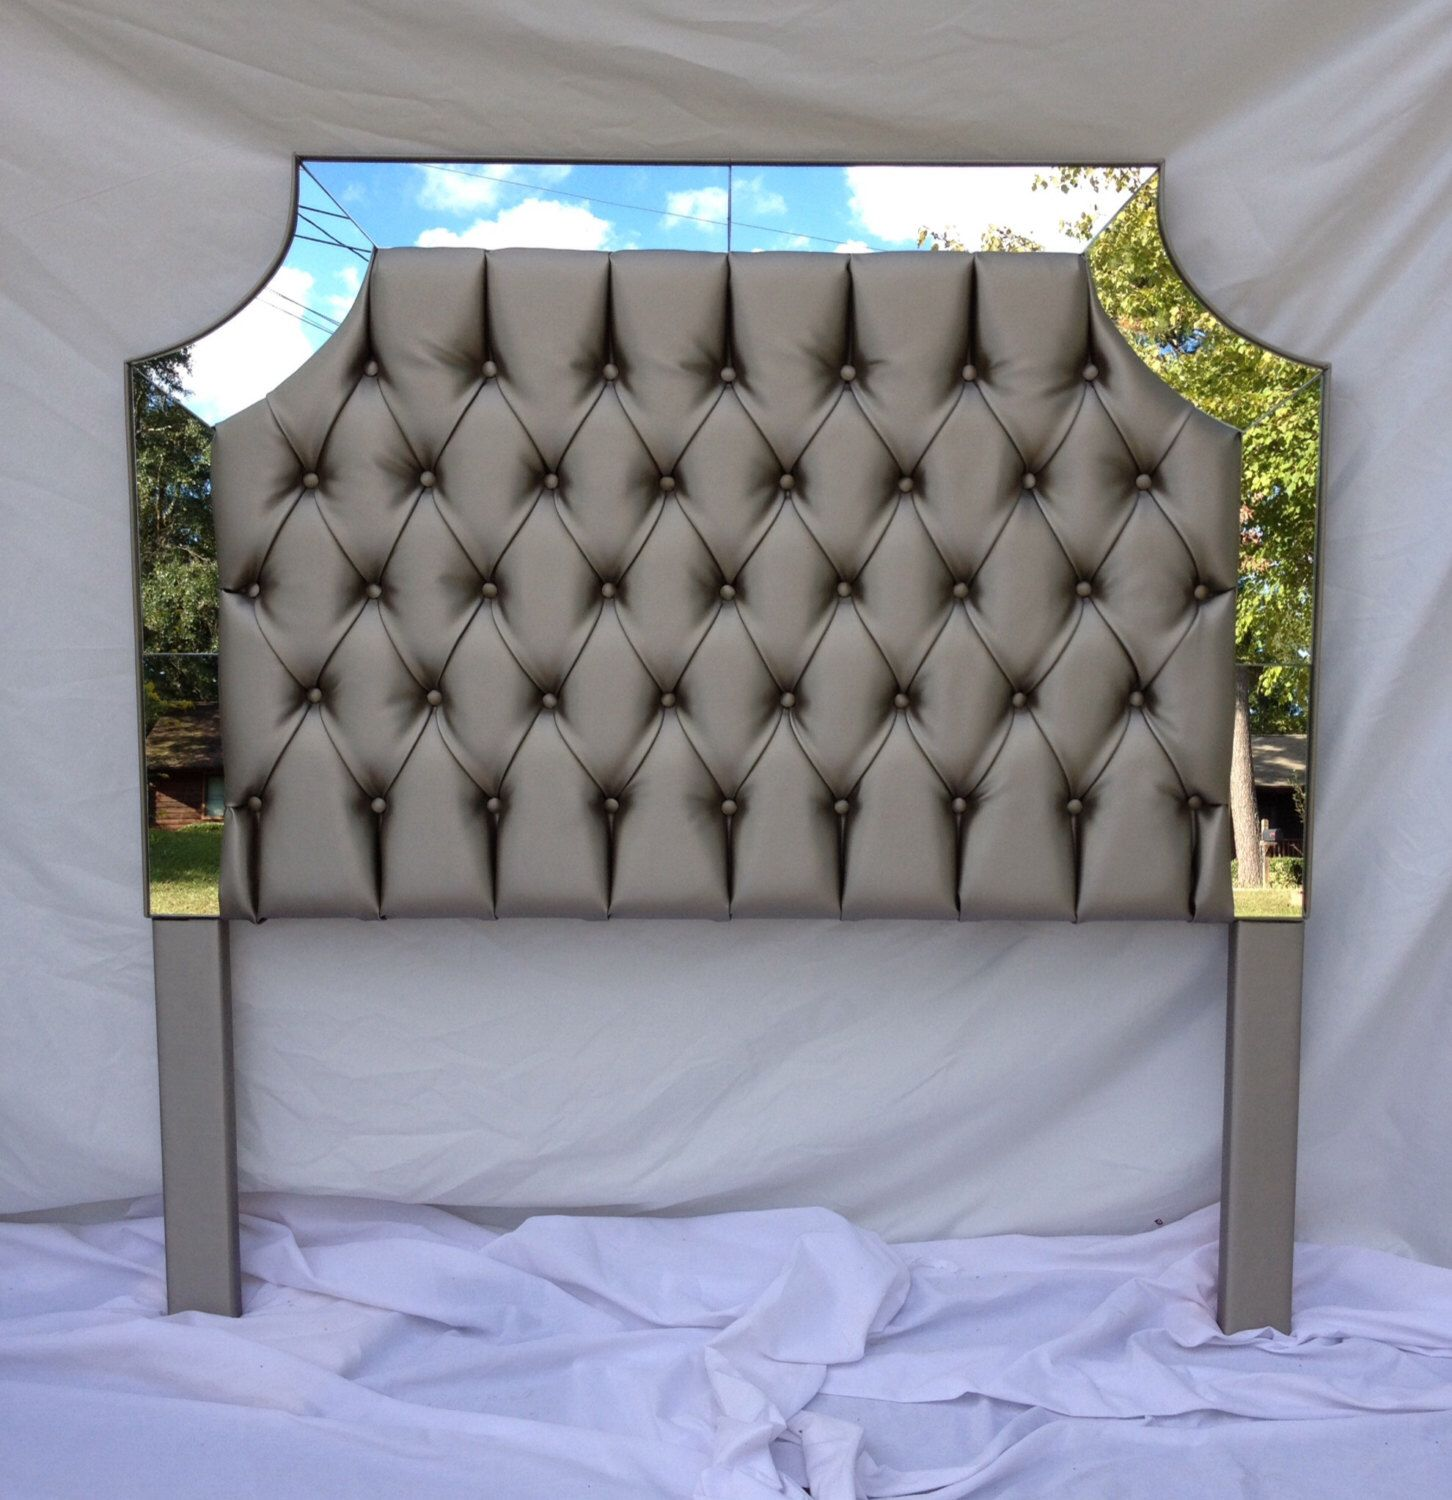 headboards out a frame fabric ideas headboard bed bedroom queen how the king to that in diy padded quilted tufted beauty with decorate bring designs your